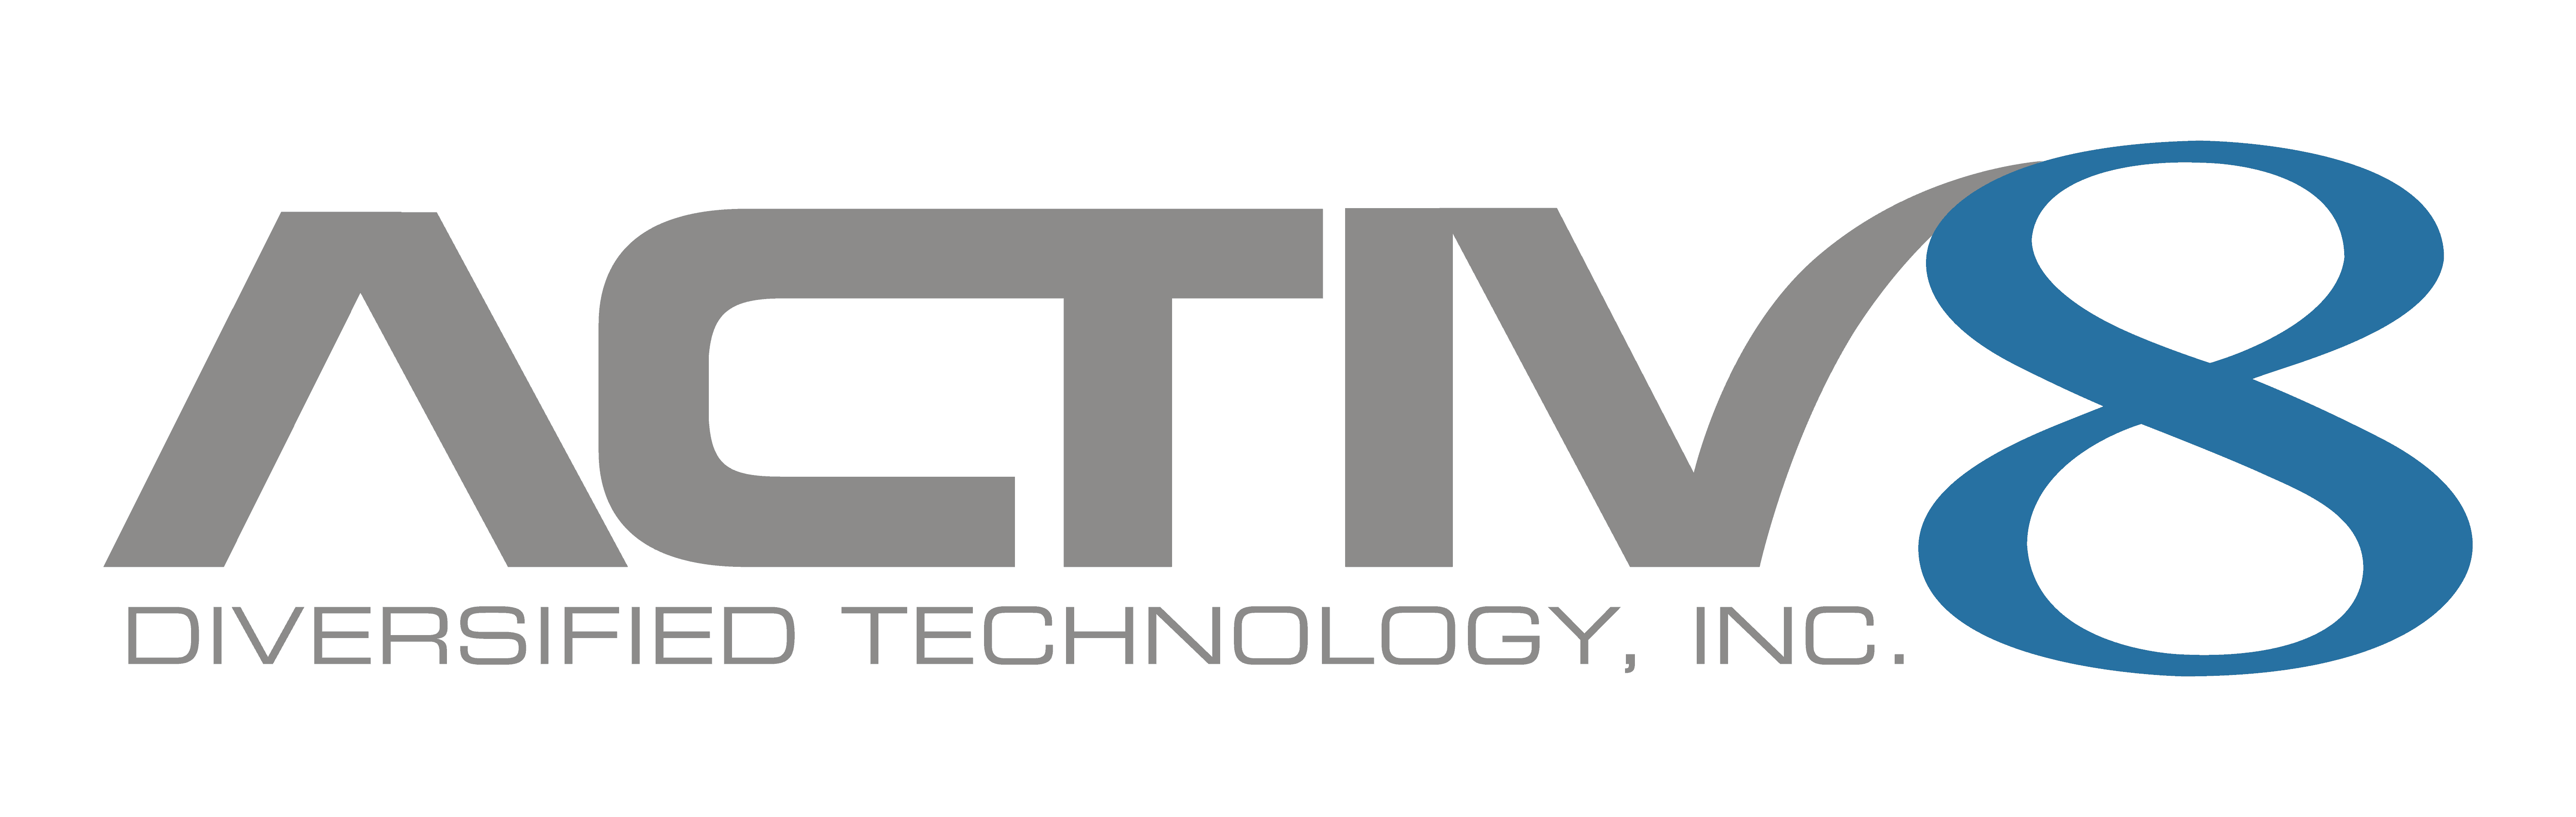 Activ8 Diversified Tech